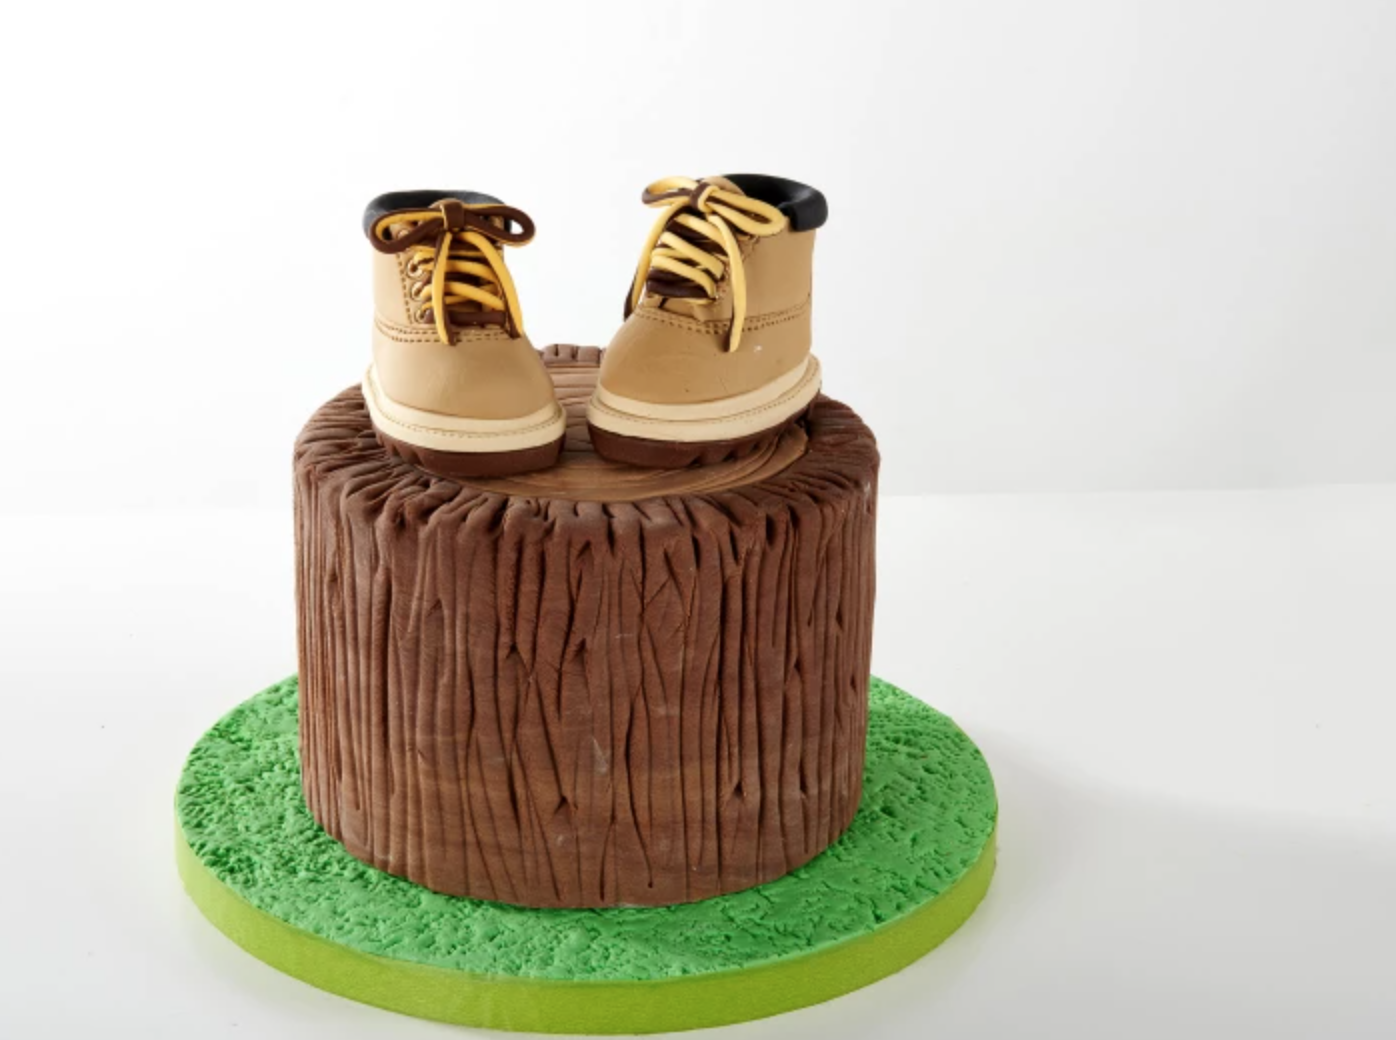 sculpted tree stump cake with little shoes